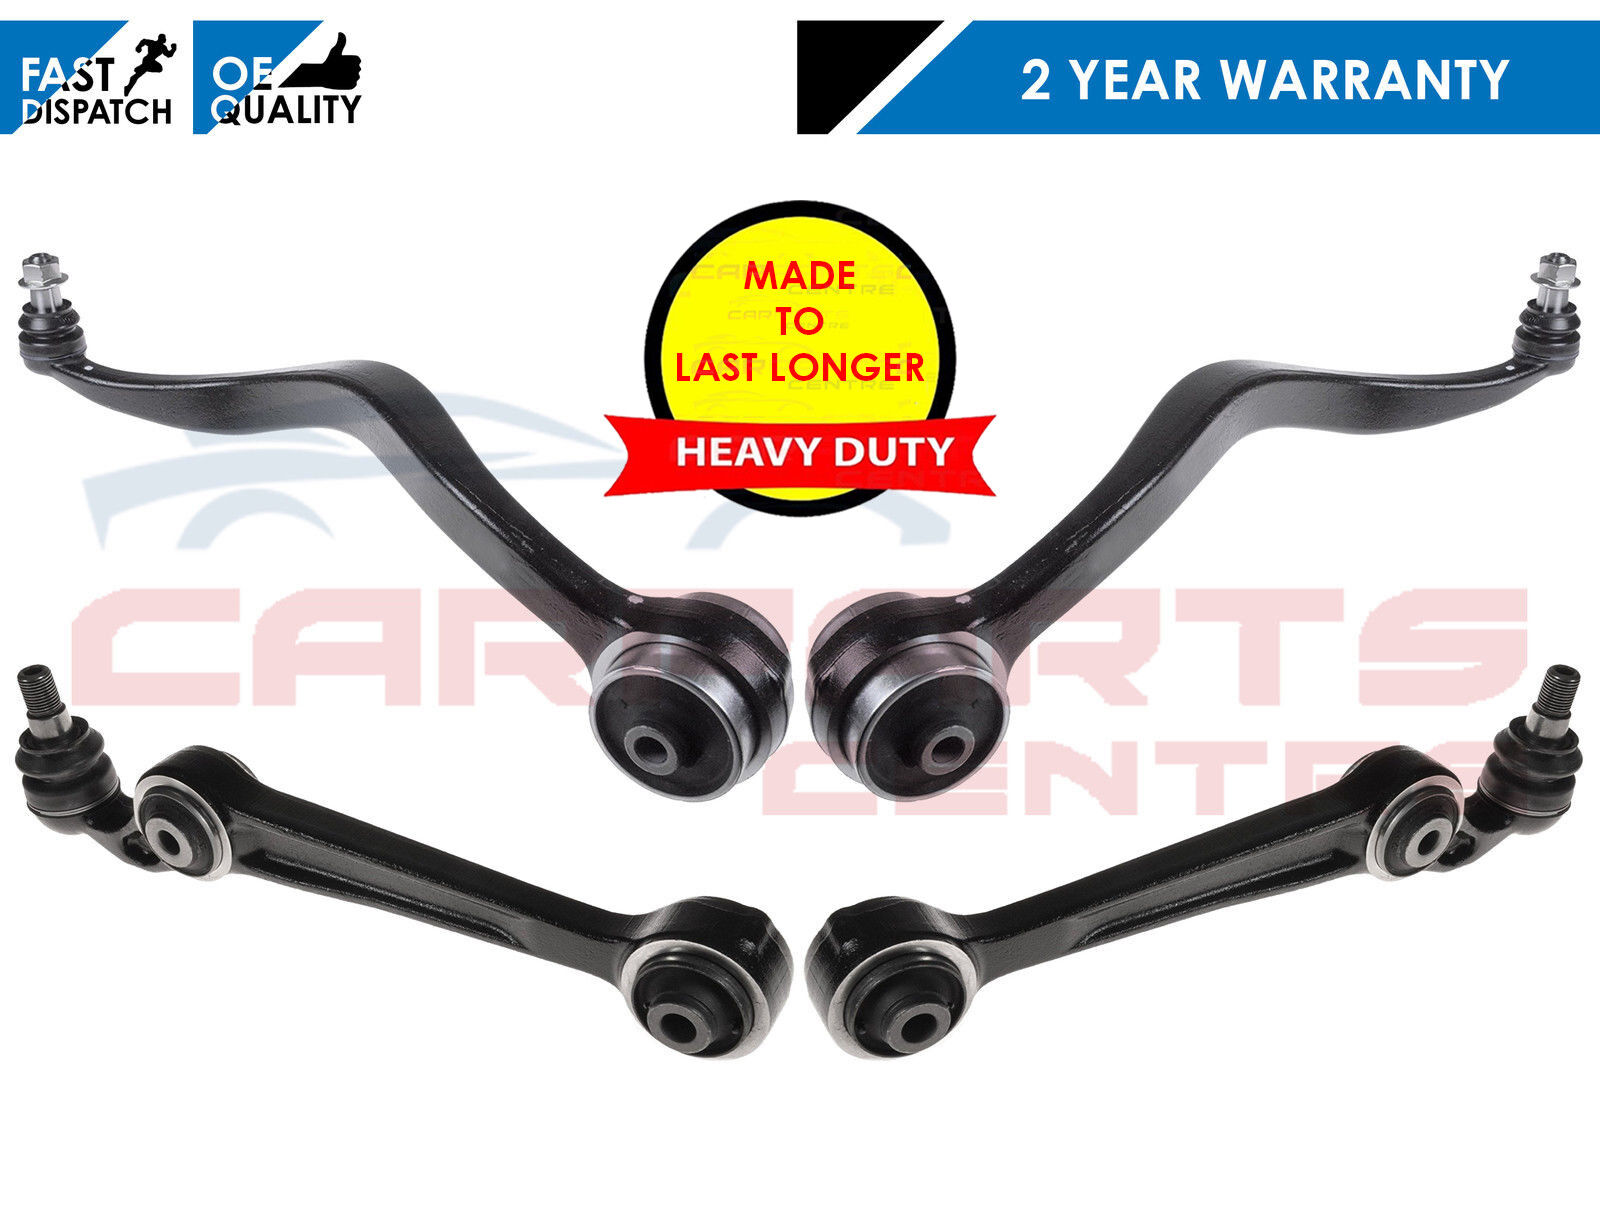 Peugeot 206 2.0TD FRONT LOWER WISHBONE TRACK CONTROL ARMS